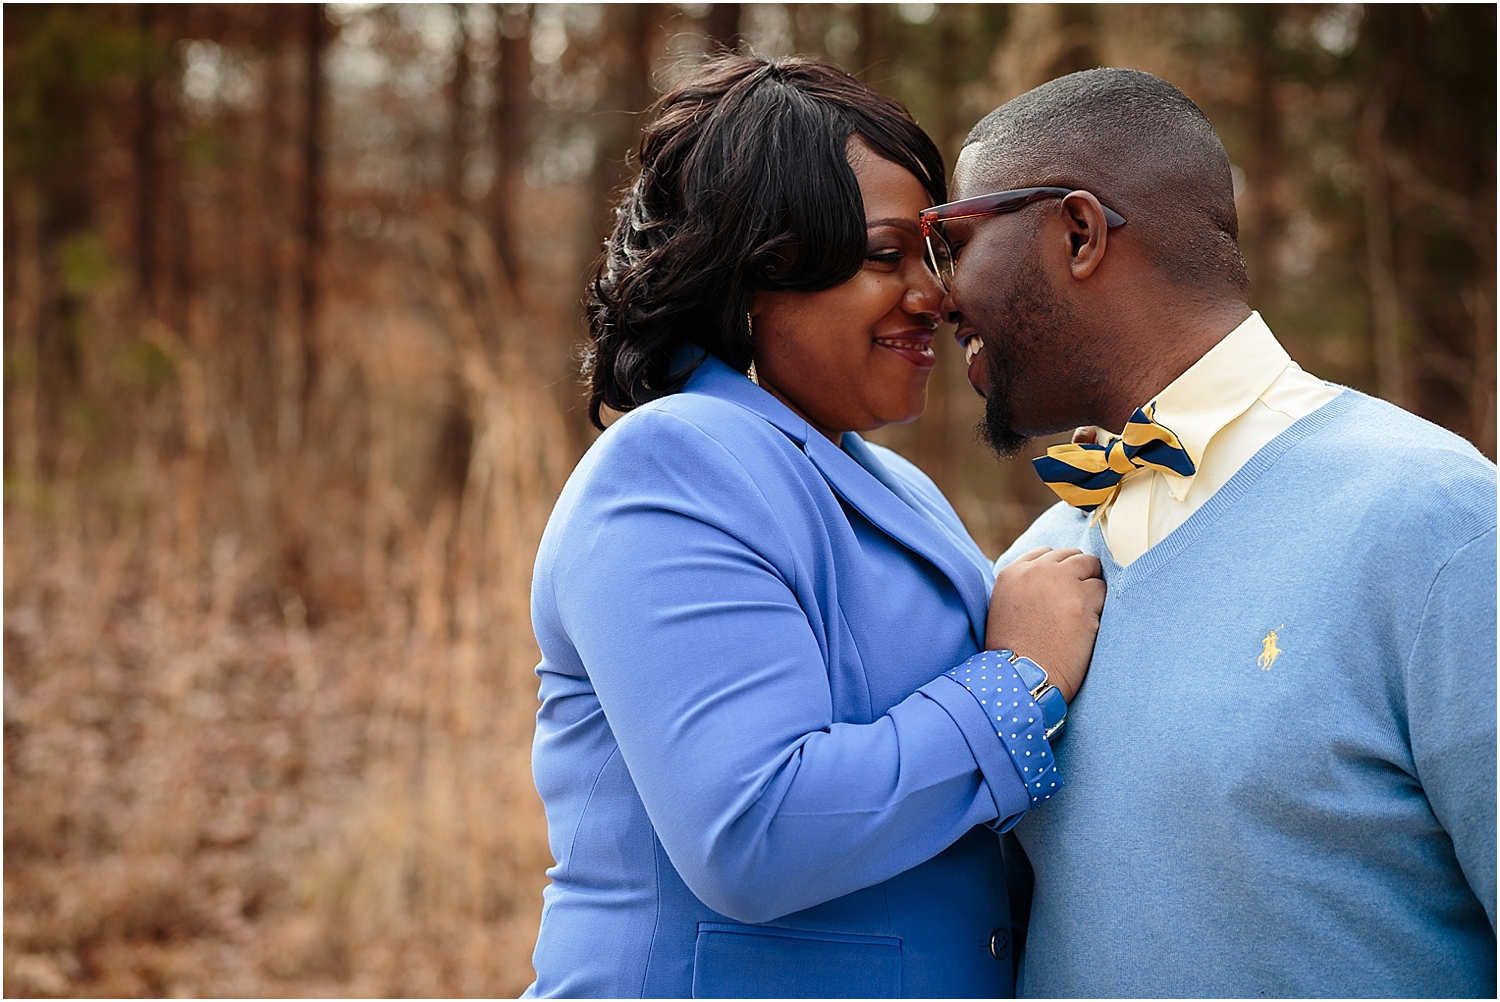 20150131-engagement-outdoor-winter-greenville-10_blog.jpg